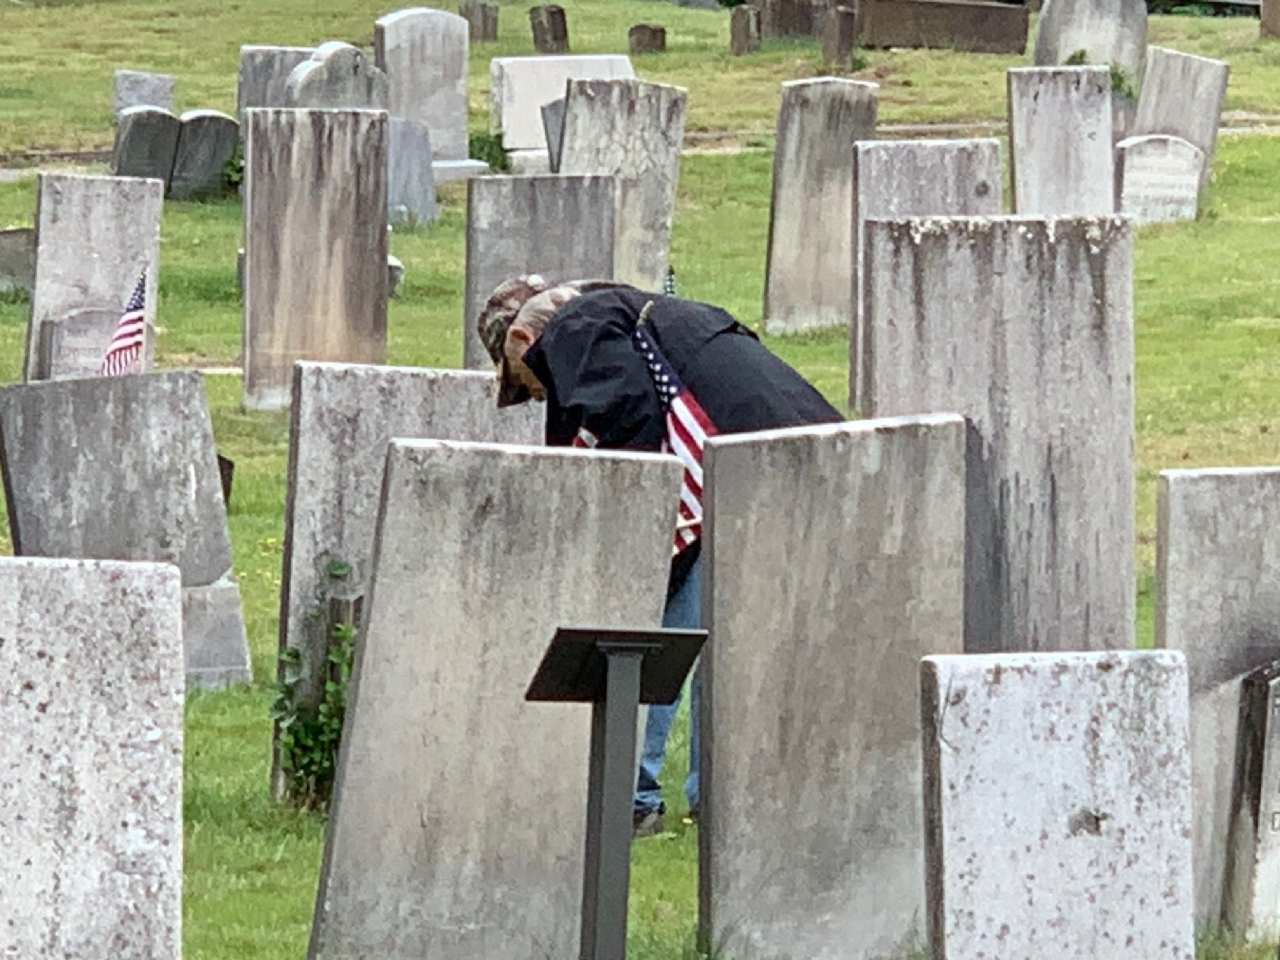 Flags at Center Cemetery on 23 May 2020